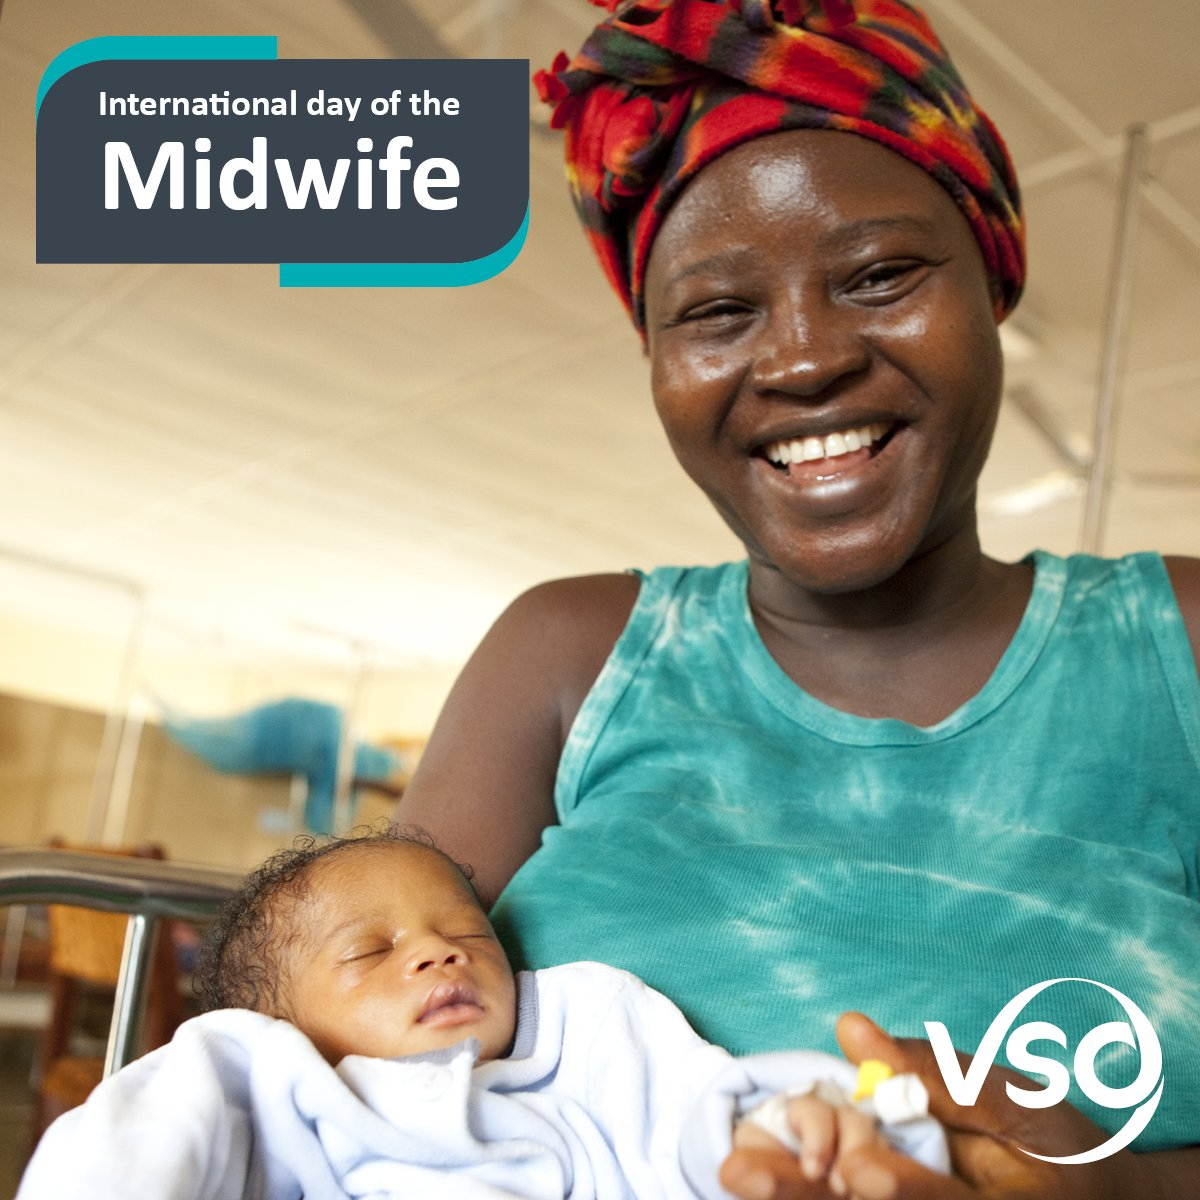 A big thank you to all our amazing volunteer #midwives helping to save lives around the world this #IDM2016 https://t.co/UVvd6JySe3